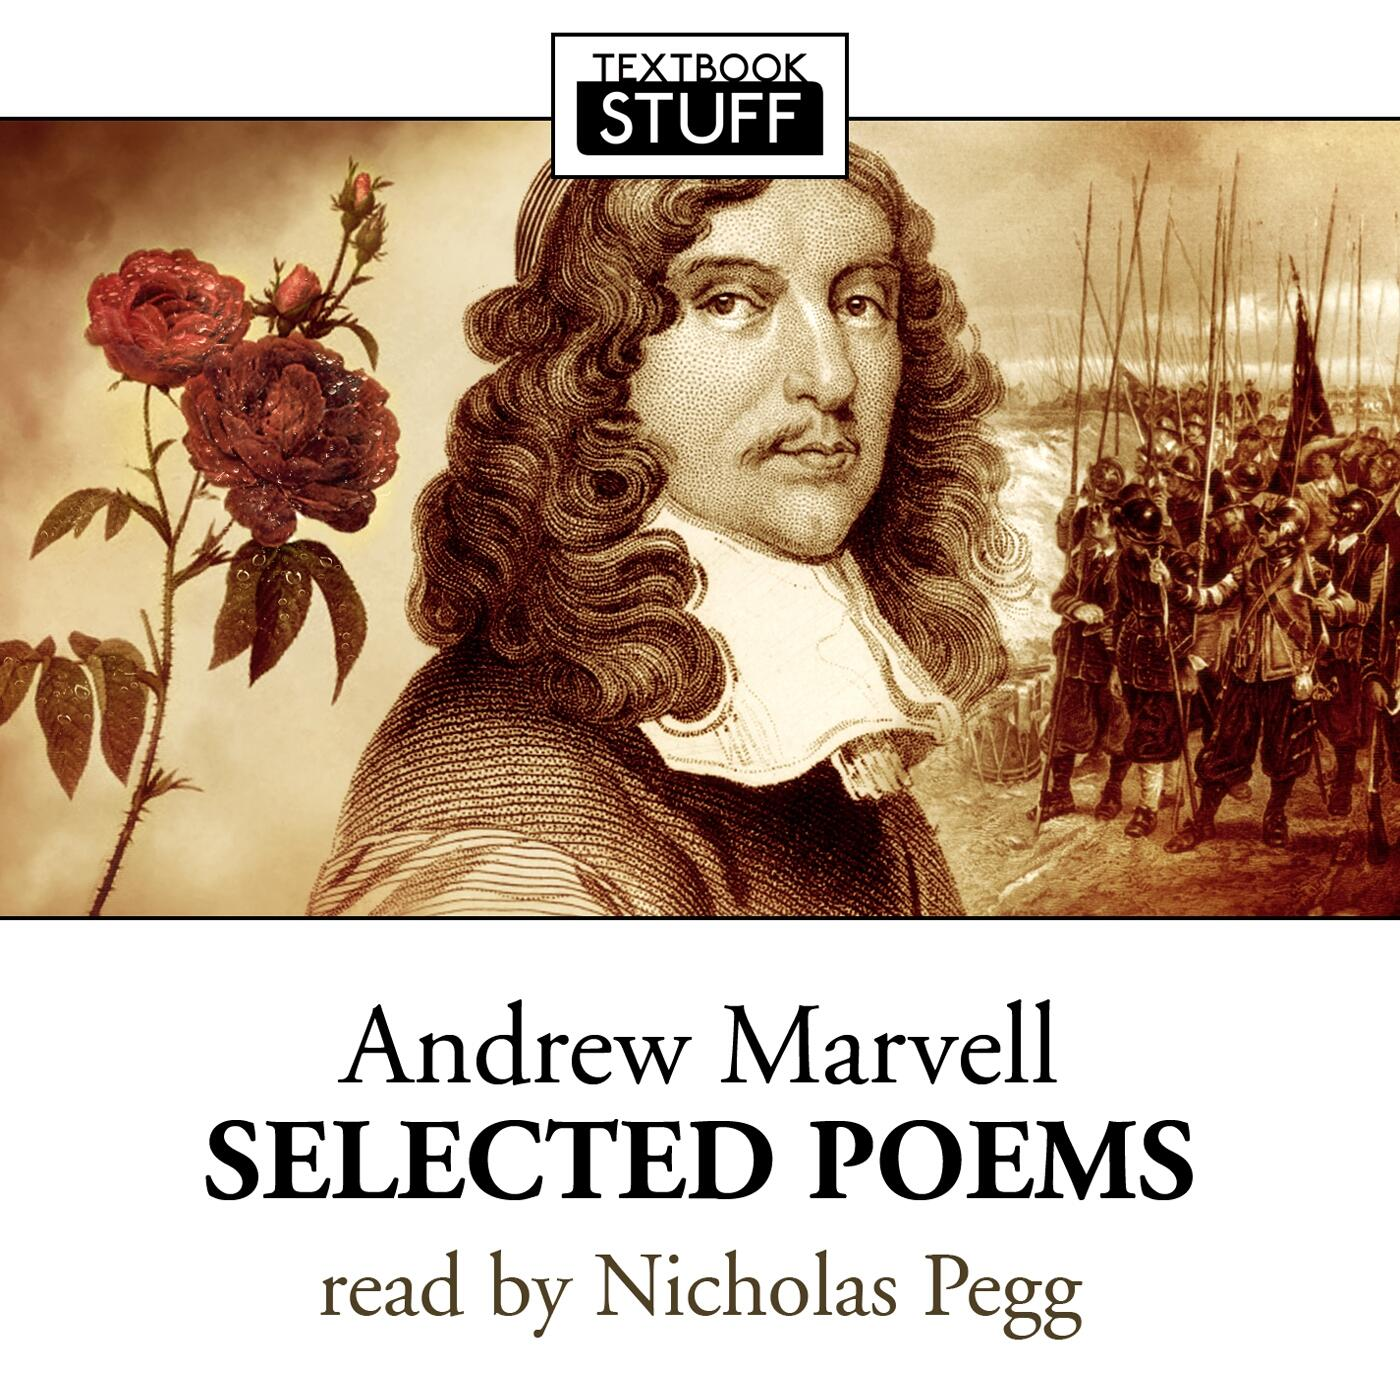 andrew marvell the coronet An horatian ode upon cromwell's return from ireland andrew marvell album poems of andrew marvell the coronet 36 the death of cromwell.